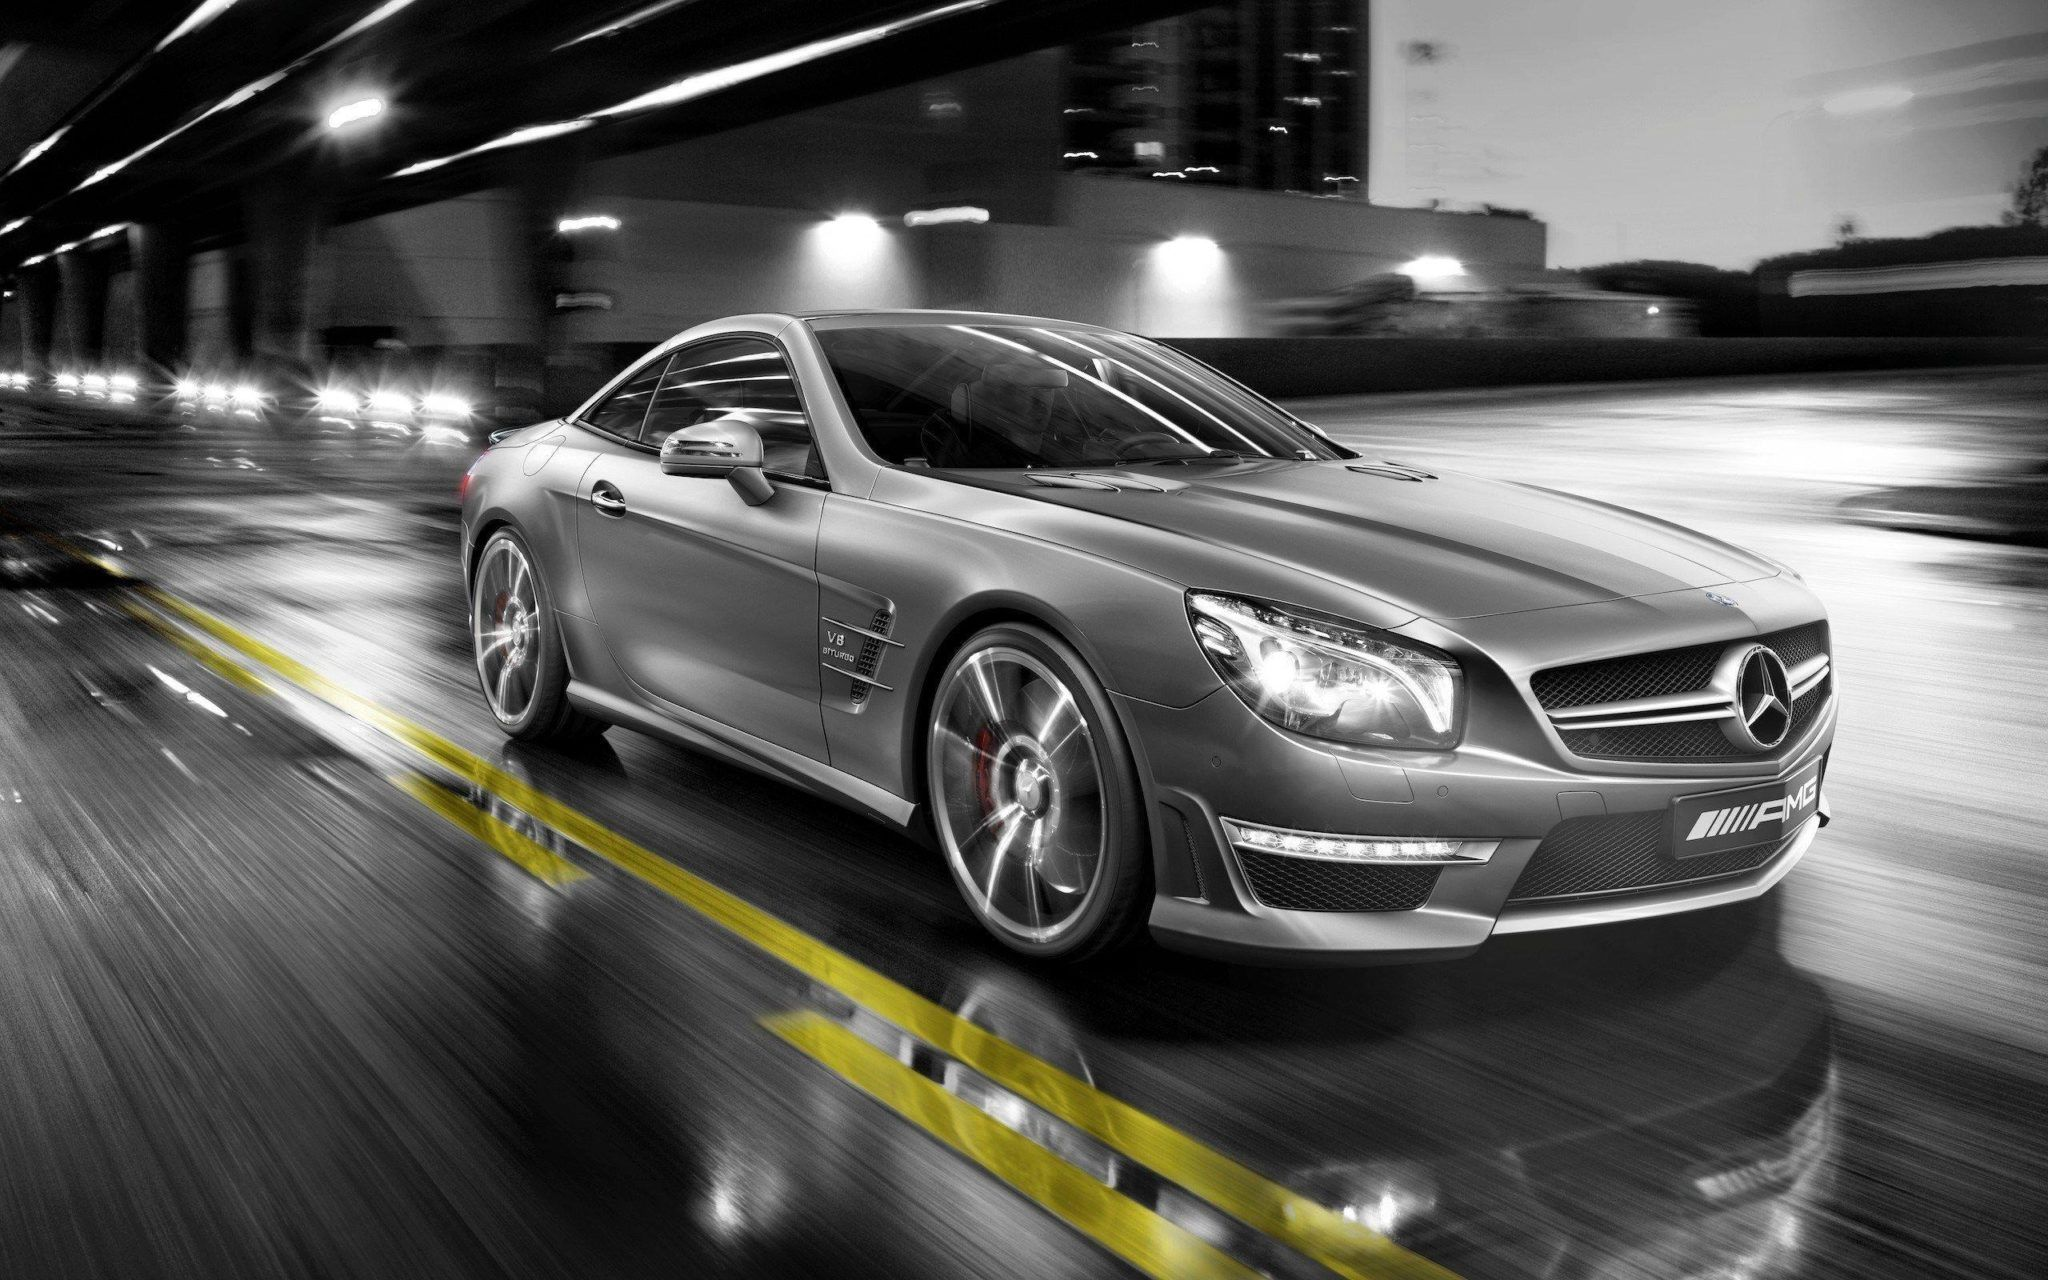 Mercedes benz free full hd wallpapers 34 httpurdunewtrend mercedes benz free full hd wallpapers 34 httpurdunewtrendhd wallpapersmotorsmercedes benzmercedes benz free full hd wallpapers 34 voltagebd Image collections